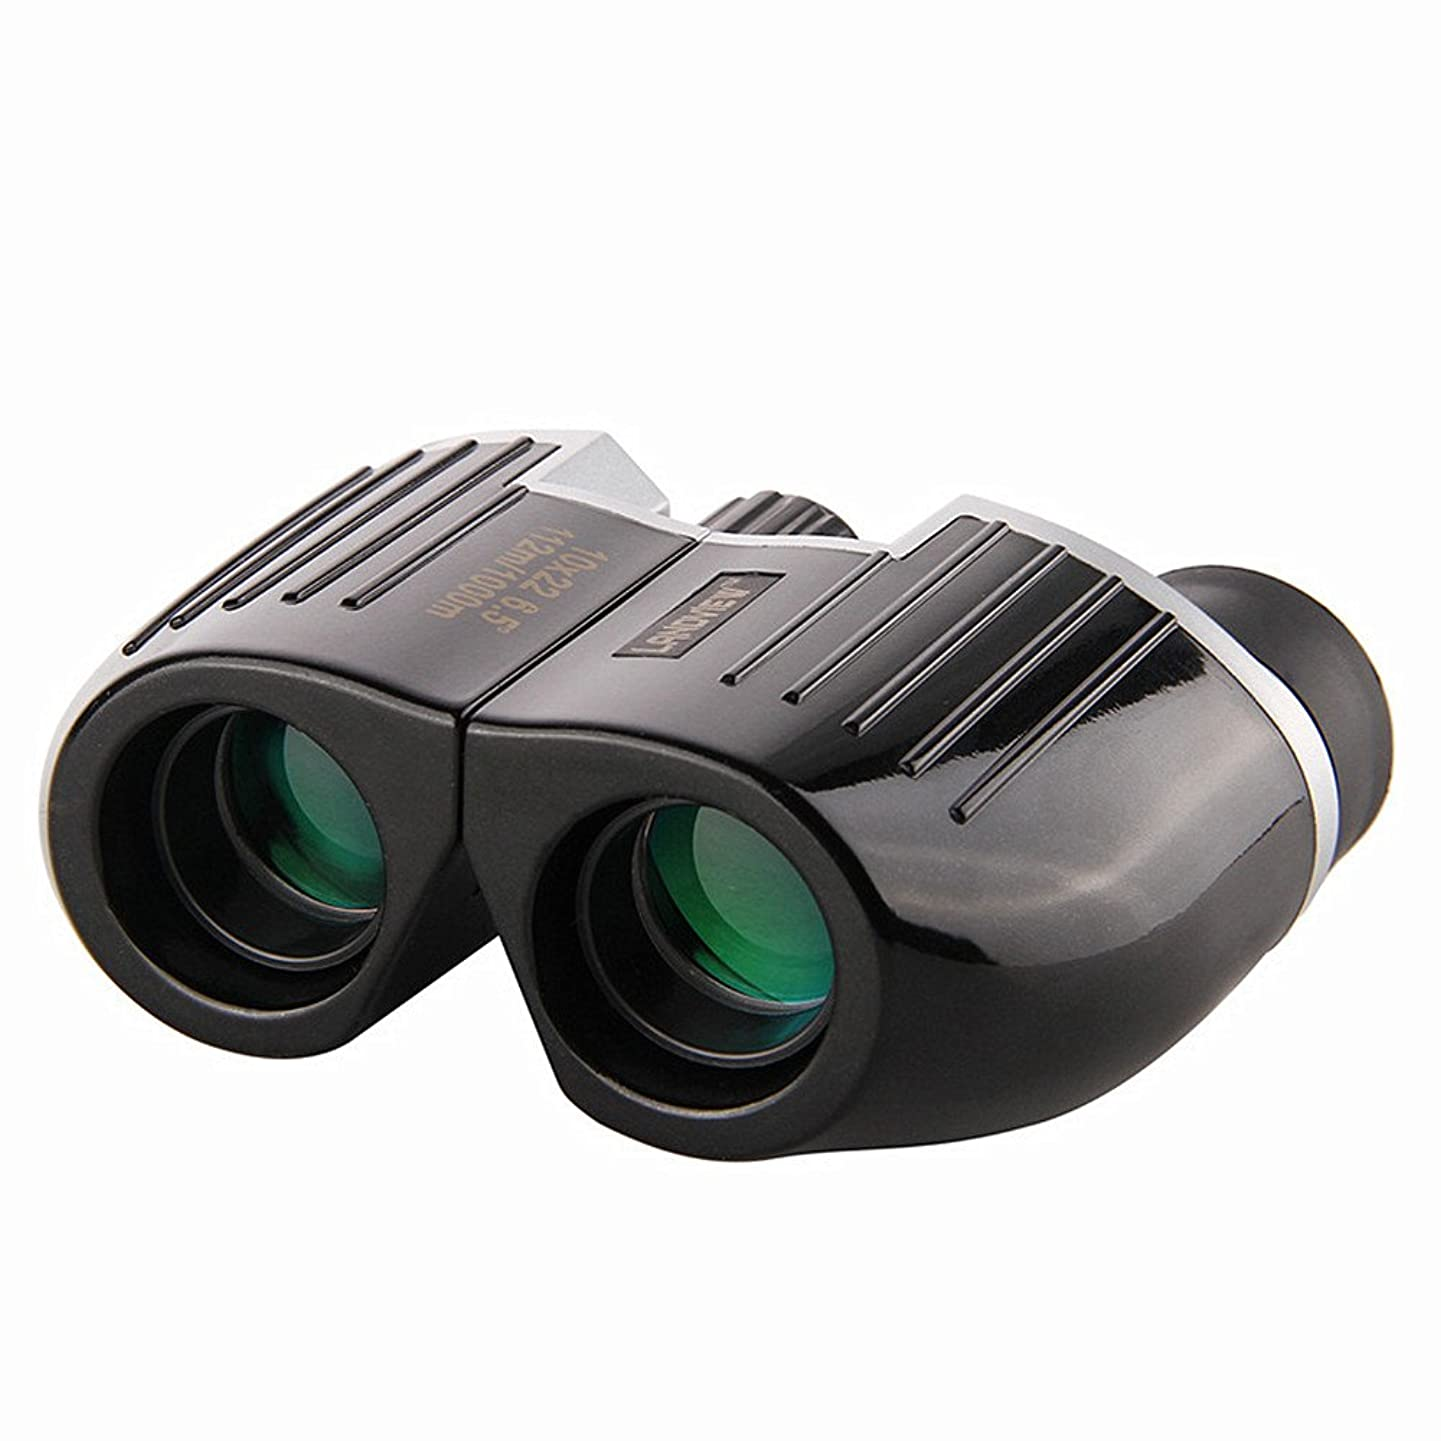 MAODATOU Binoculars 10x22 HD Green Film Lens Bird Watching Telescope High Magnification Binoculars Outdoor Use for Bird Watching,Hunting,Sports Events,Travelling